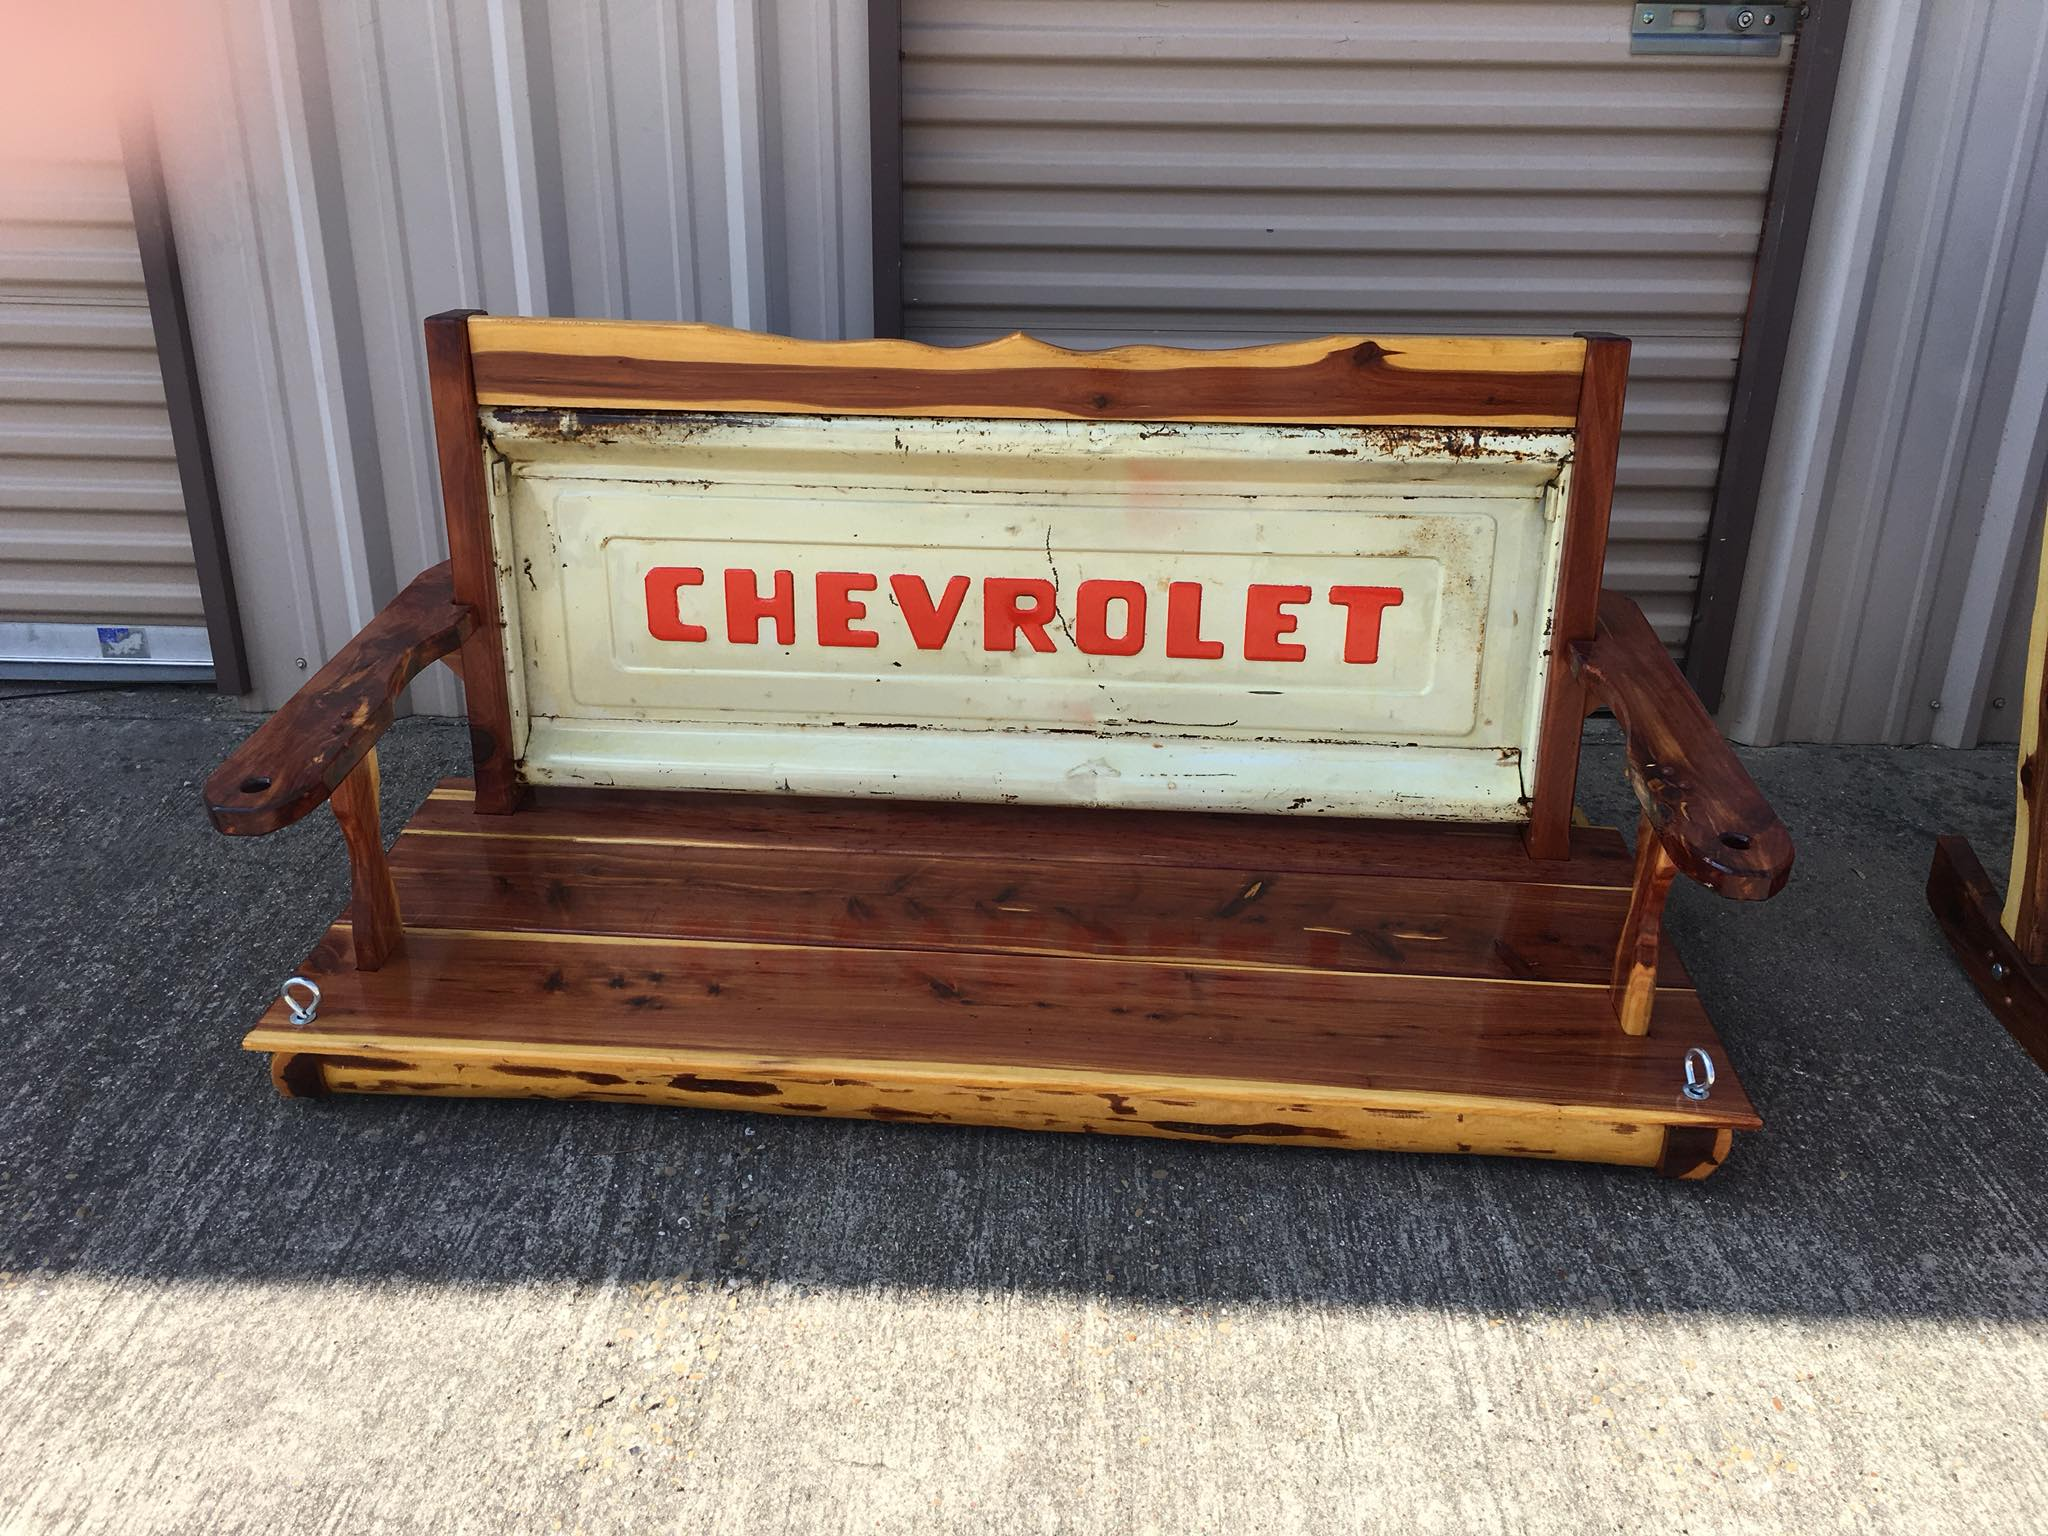 Custom Cedar porch swing with Chevrolet tailgate. Built by Red Cedar Creations Steve Coleman